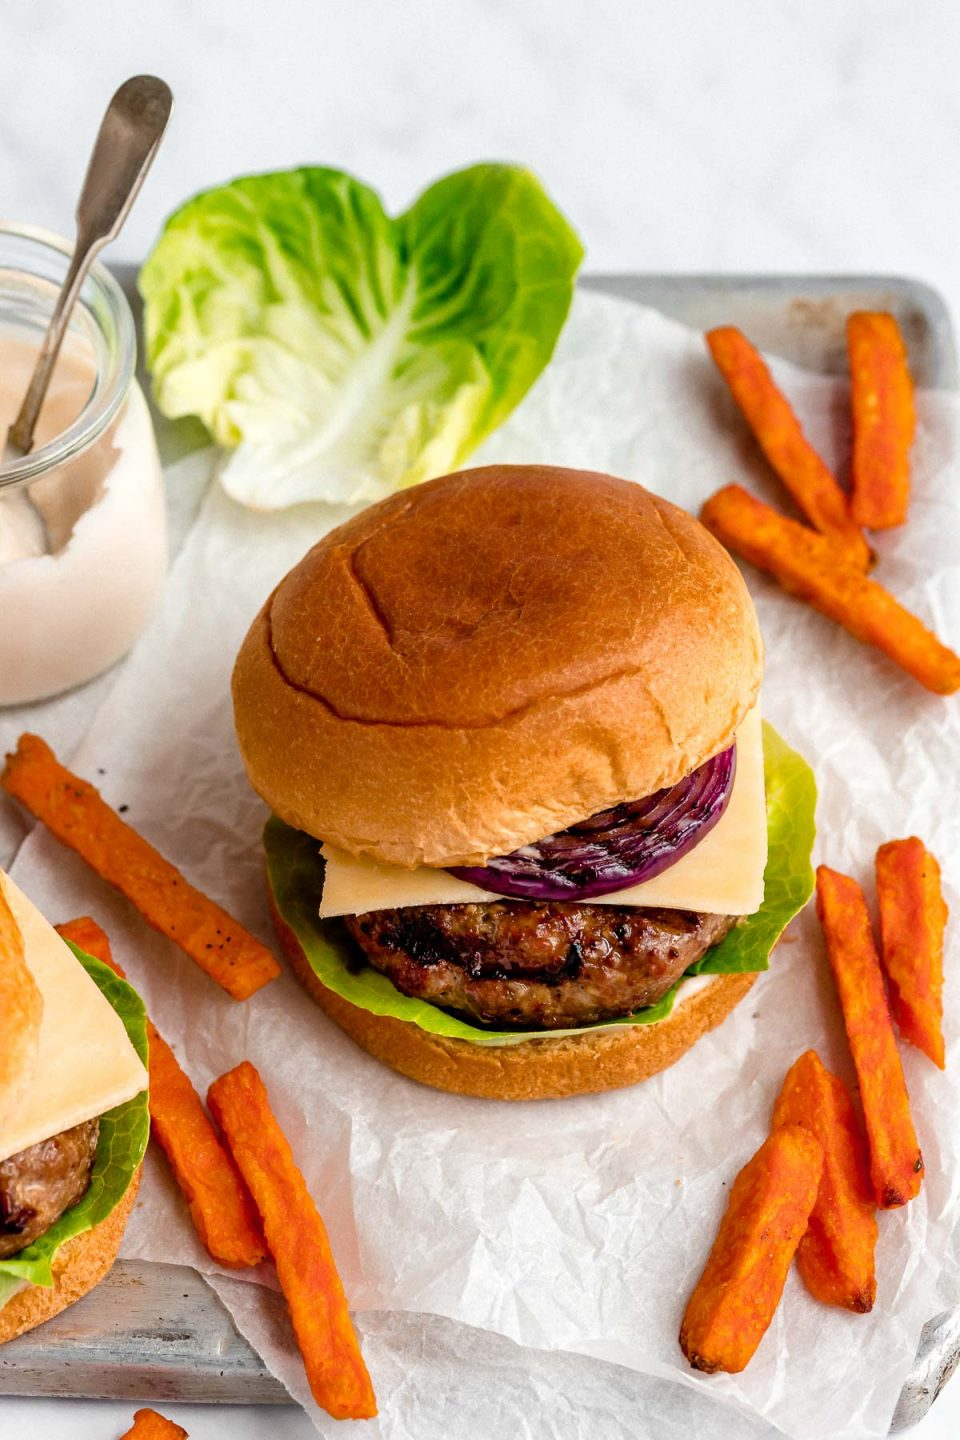 A grilled turkey burger served in a burger bun with lettuce, cheese & grilled red onion. Surrounding the burgers are sweet potato fries, & a small jar of burger sauce.